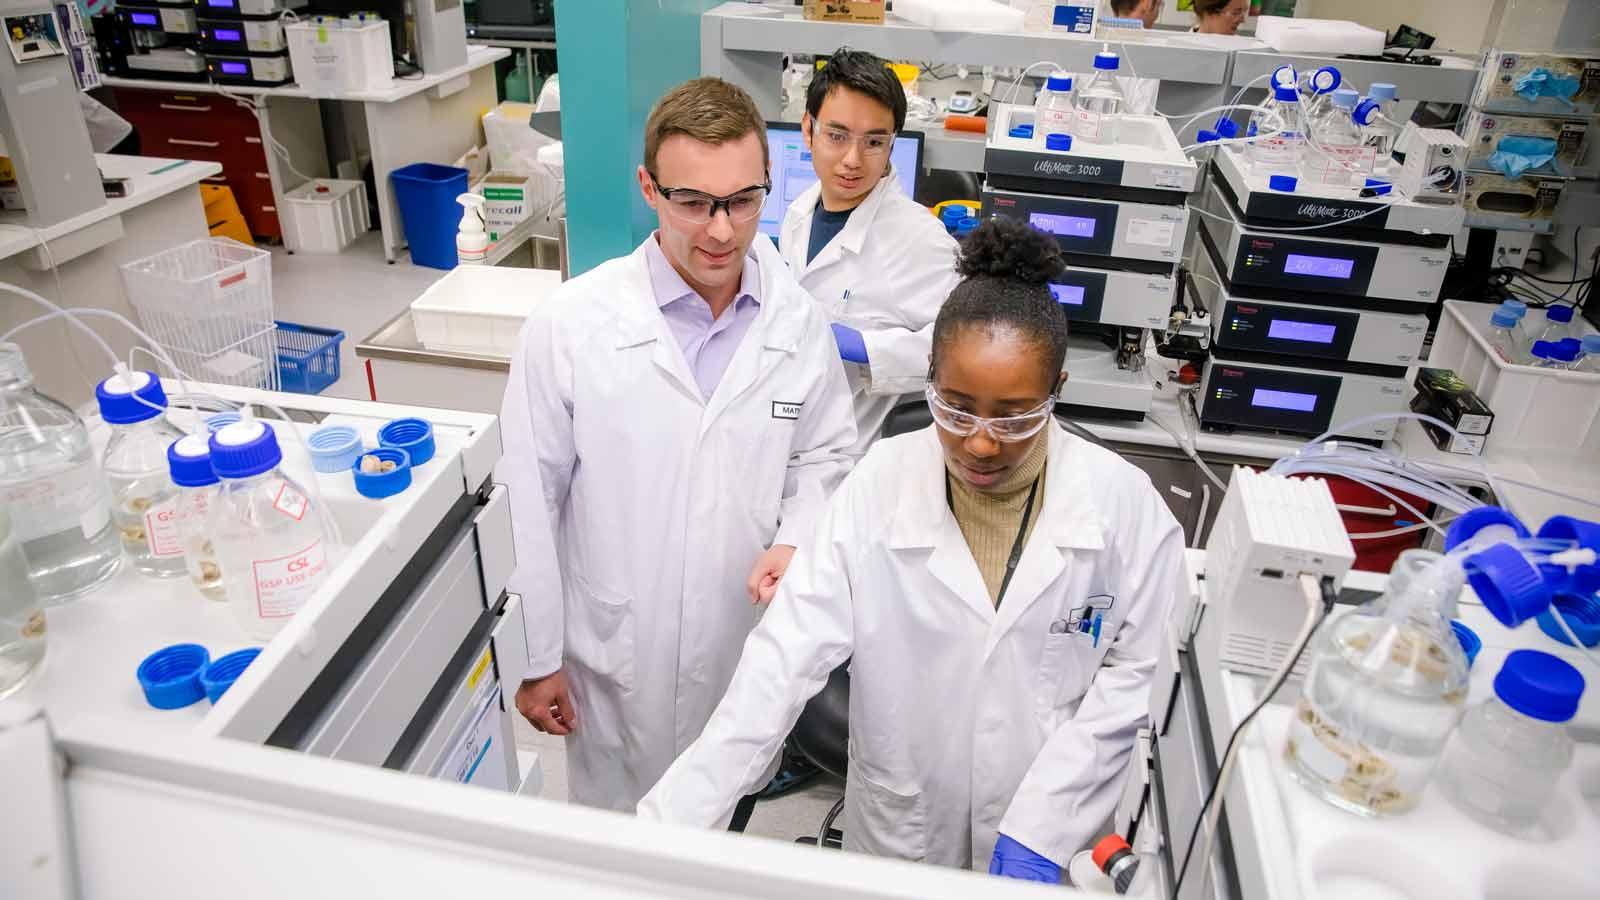 CSL Behring lab employees in Australia